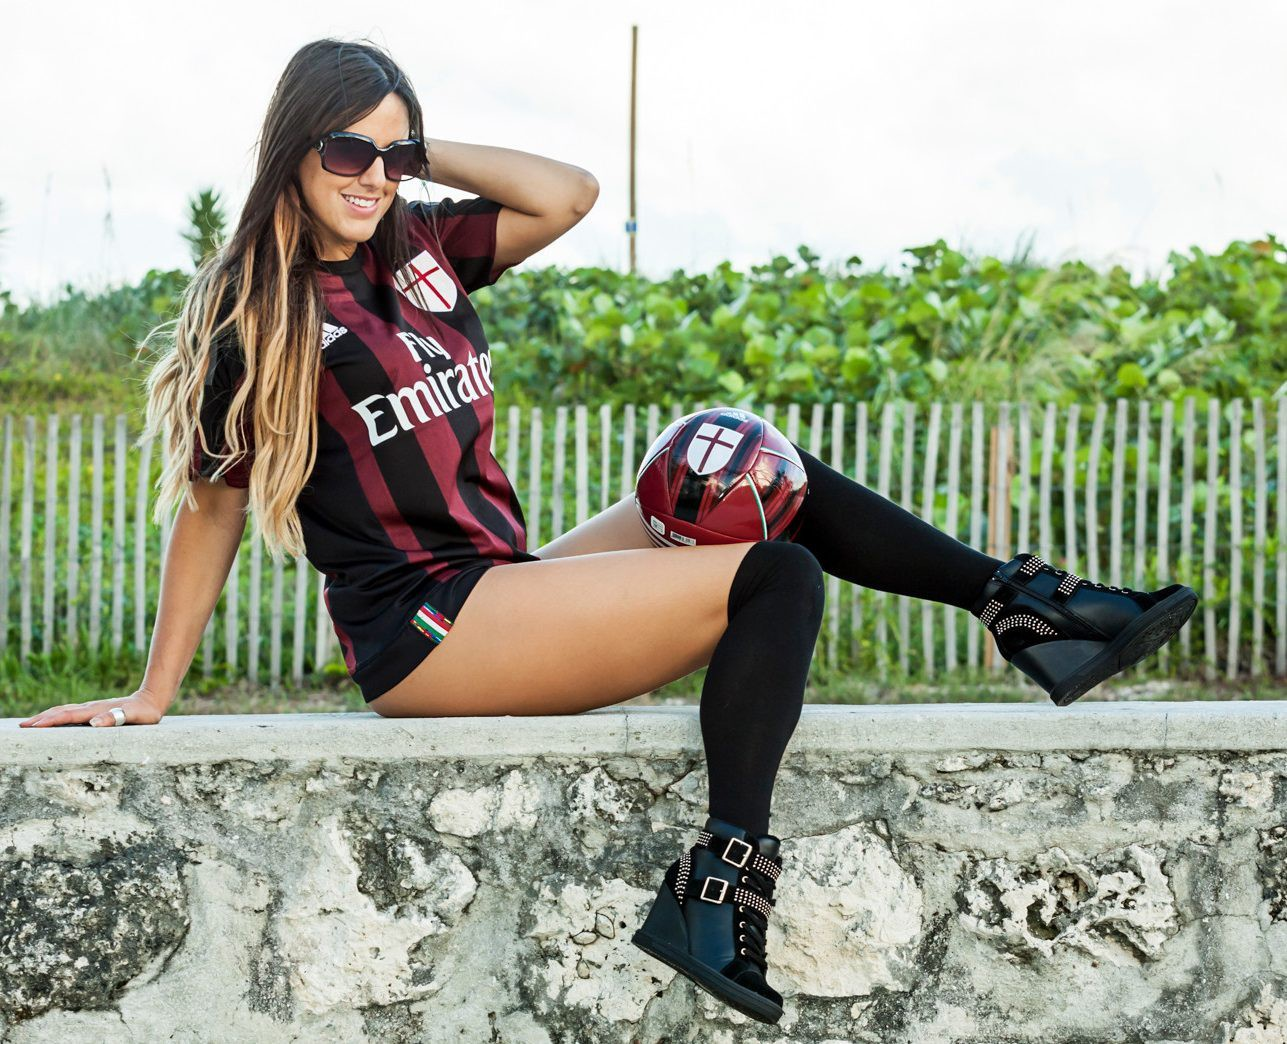 Claudia Romani has been called the sexiest referee in the world